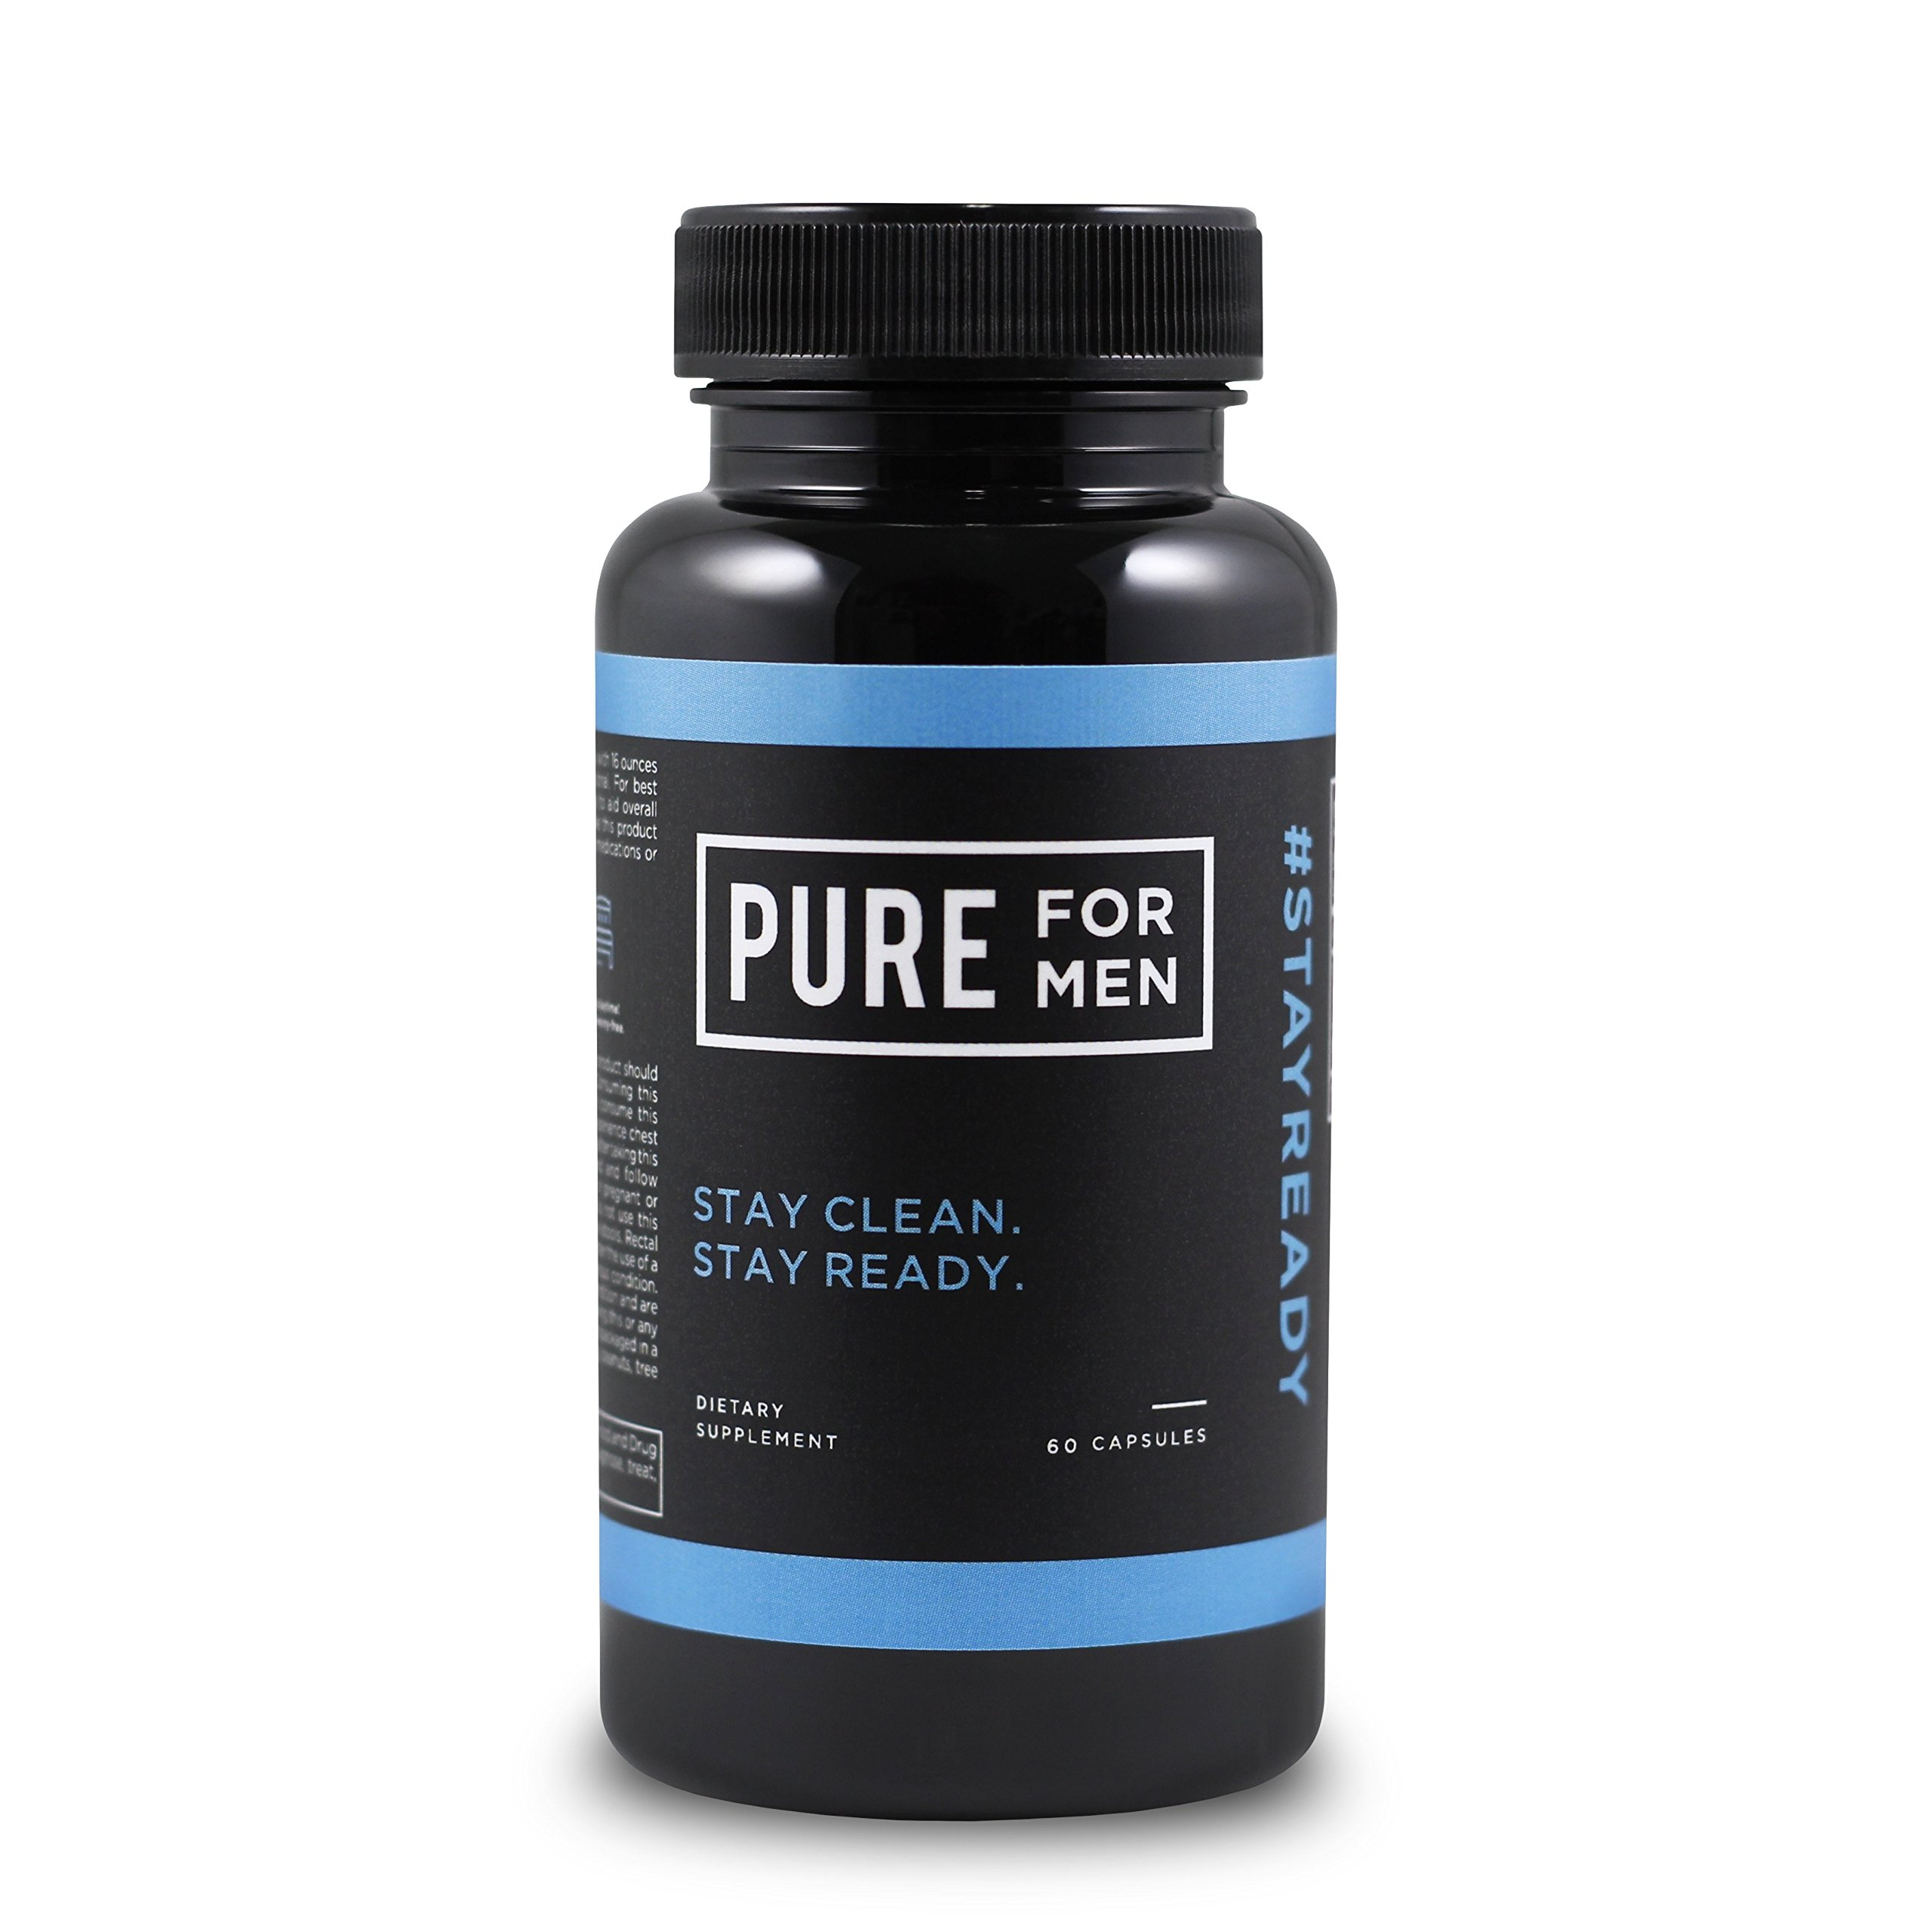 Pure for Men - The Original Vegan Cleanliness Fiber Supplement, 60 Capsules - Proven Proprietary